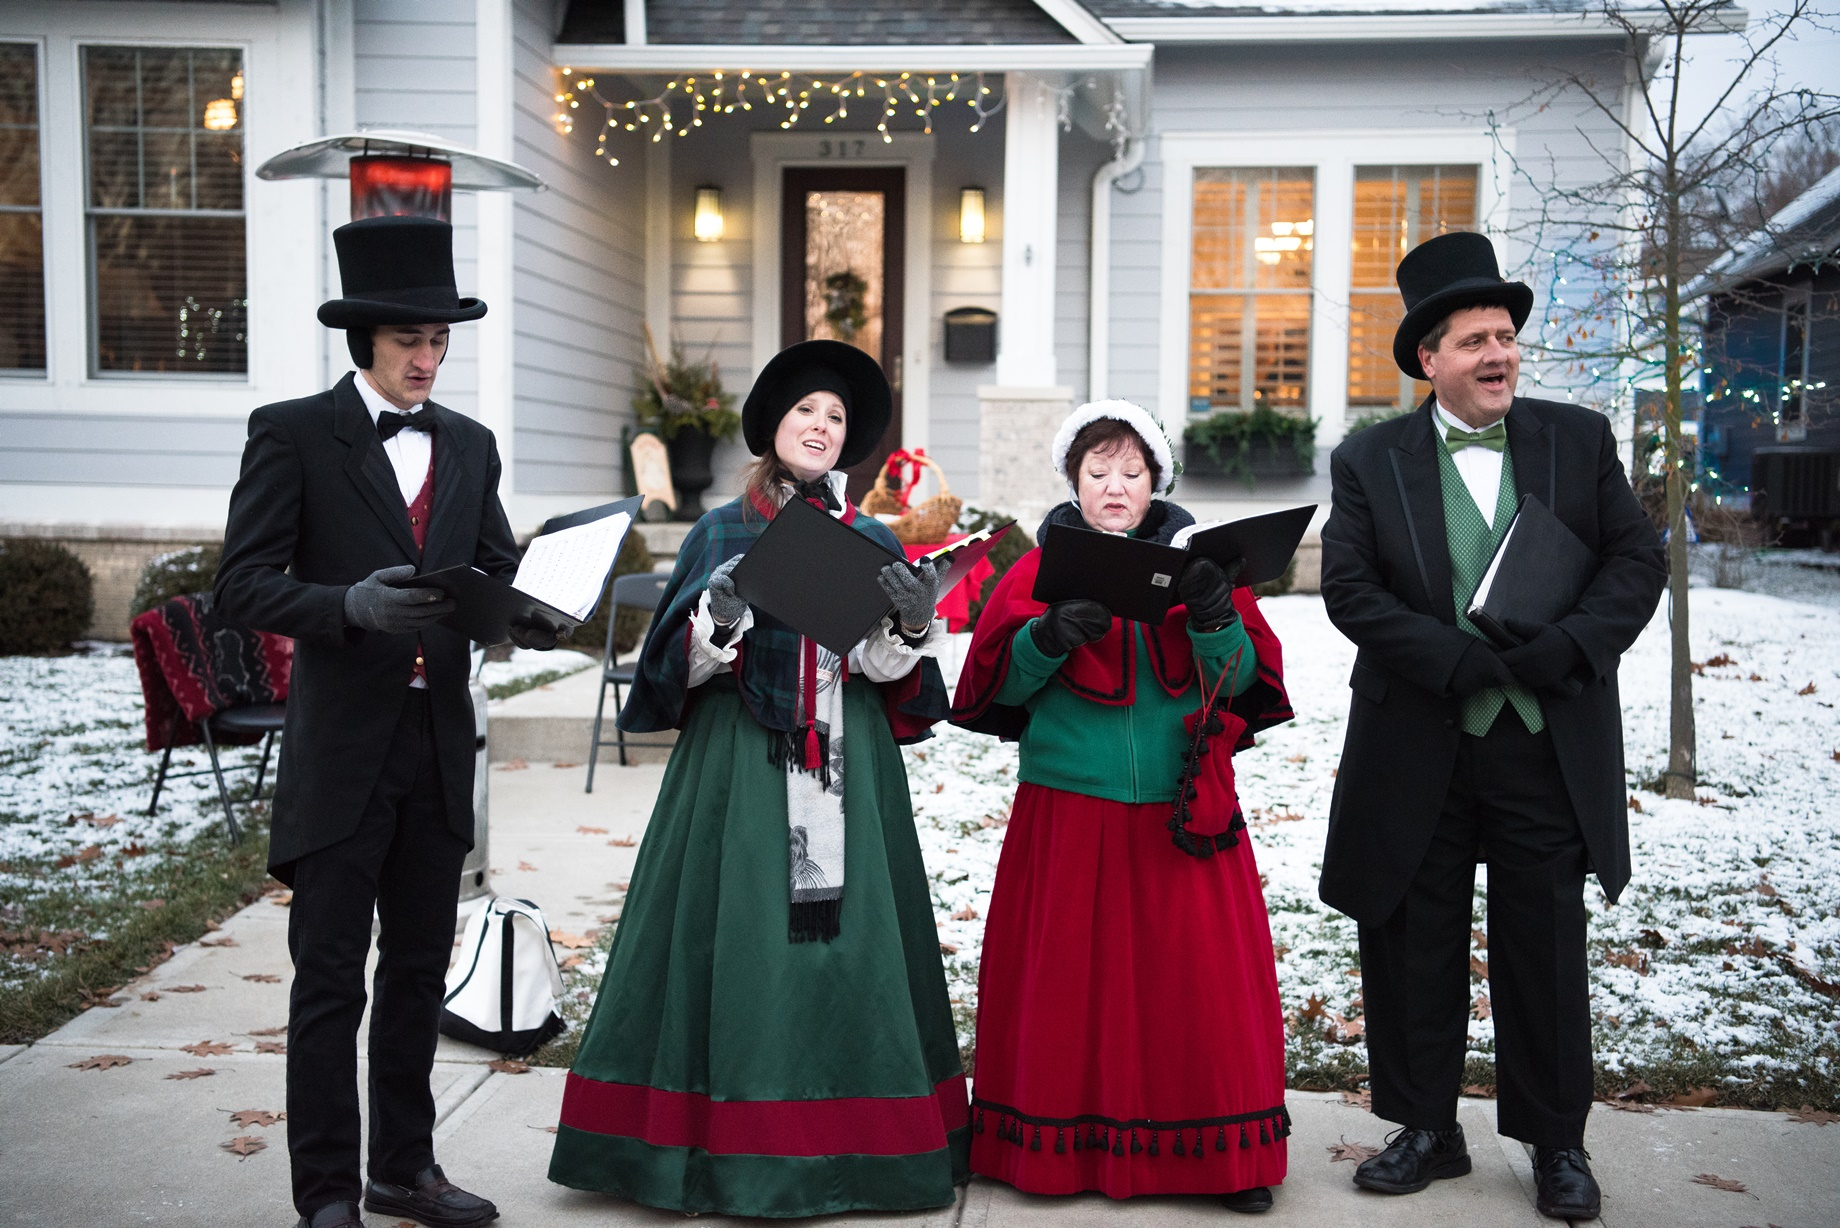 Carolers Holiday Porchfest Carmel 2018